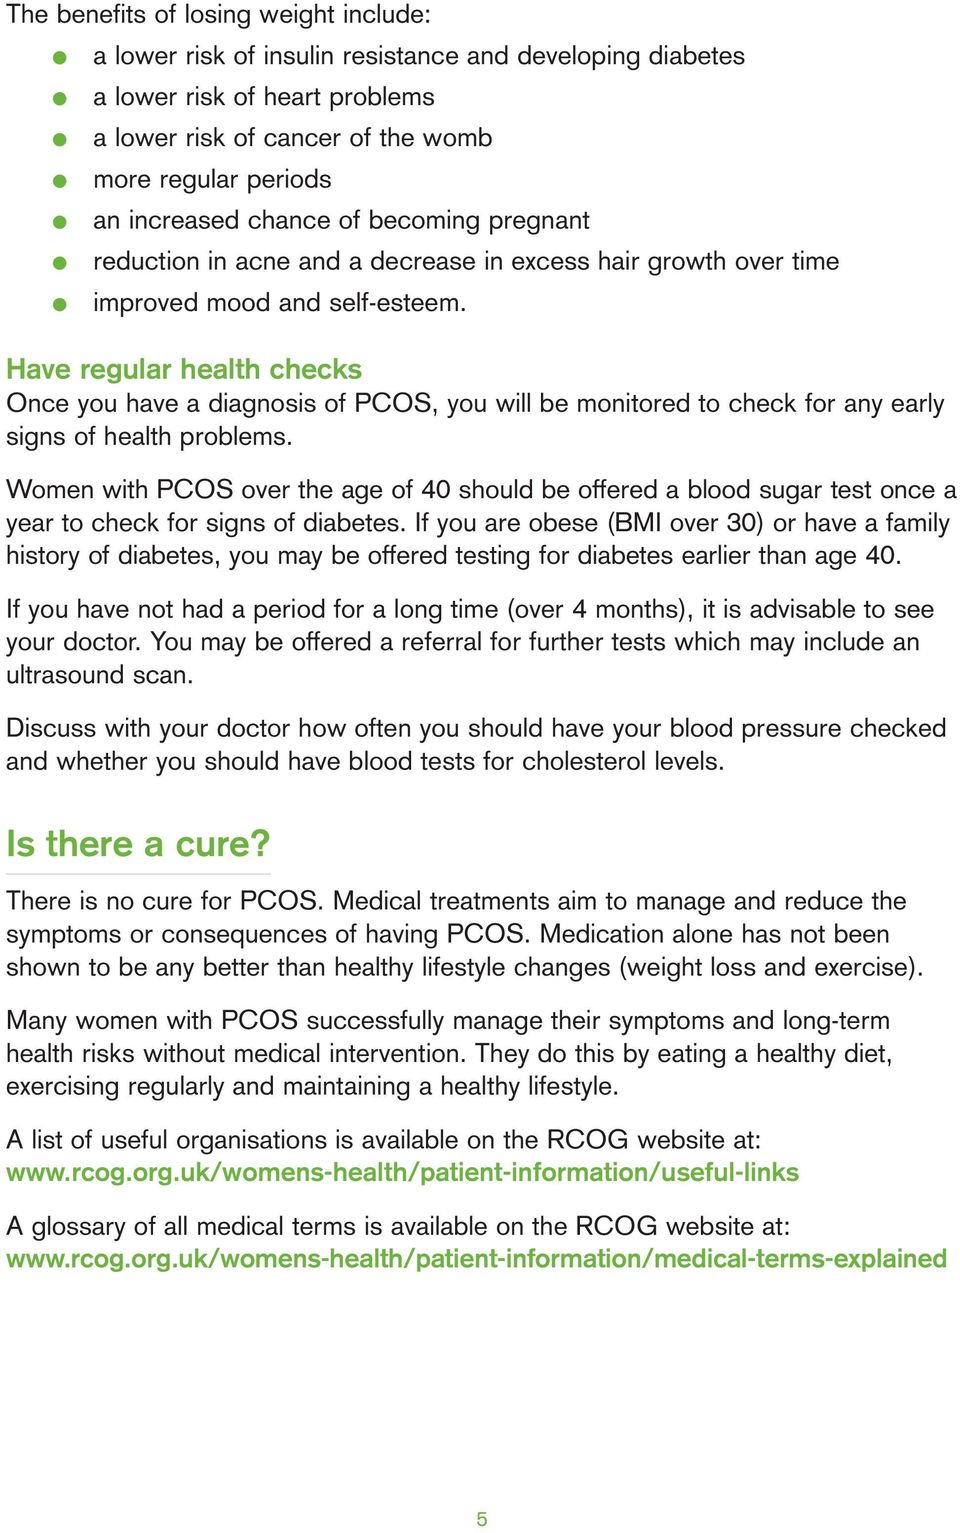 Have regular health checks Once you have a diagnosis of PCOS, you will be monitored to check for any early signs of health problems.